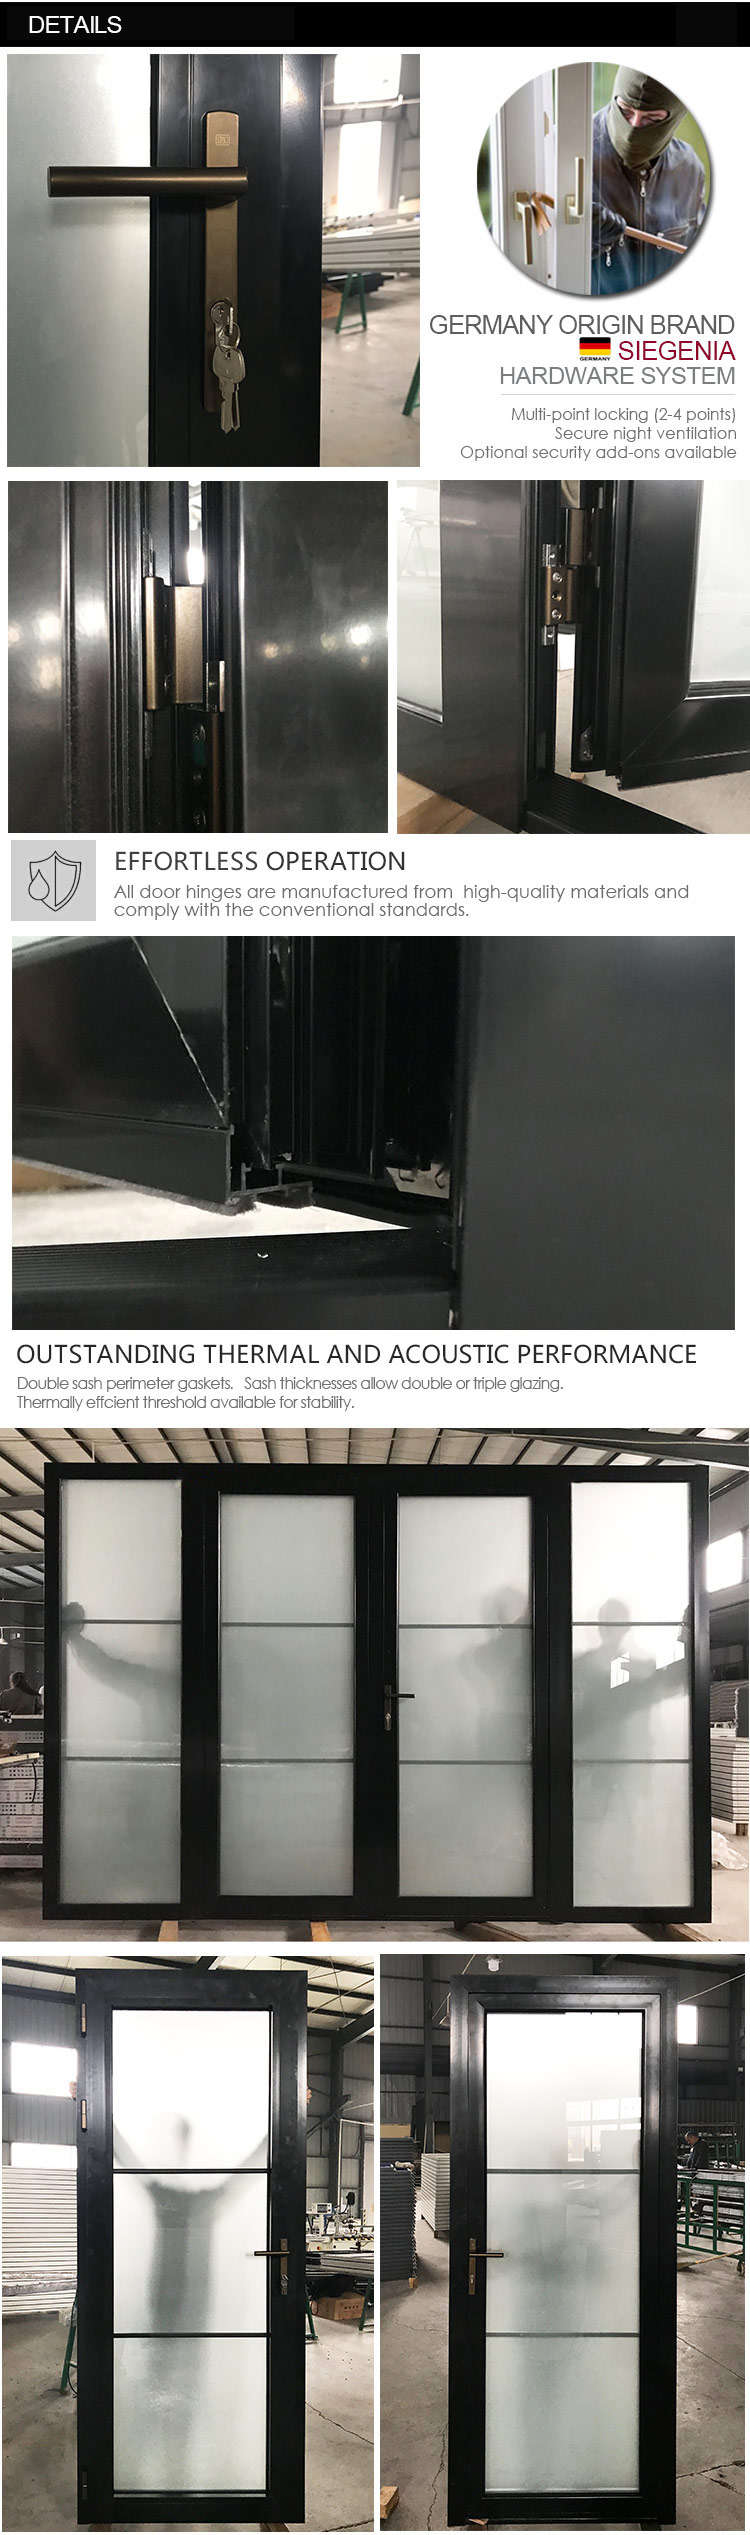 Small moq double glazed front entrance door in german depot & home commercial Sound proof thermal break aluminum transom doors